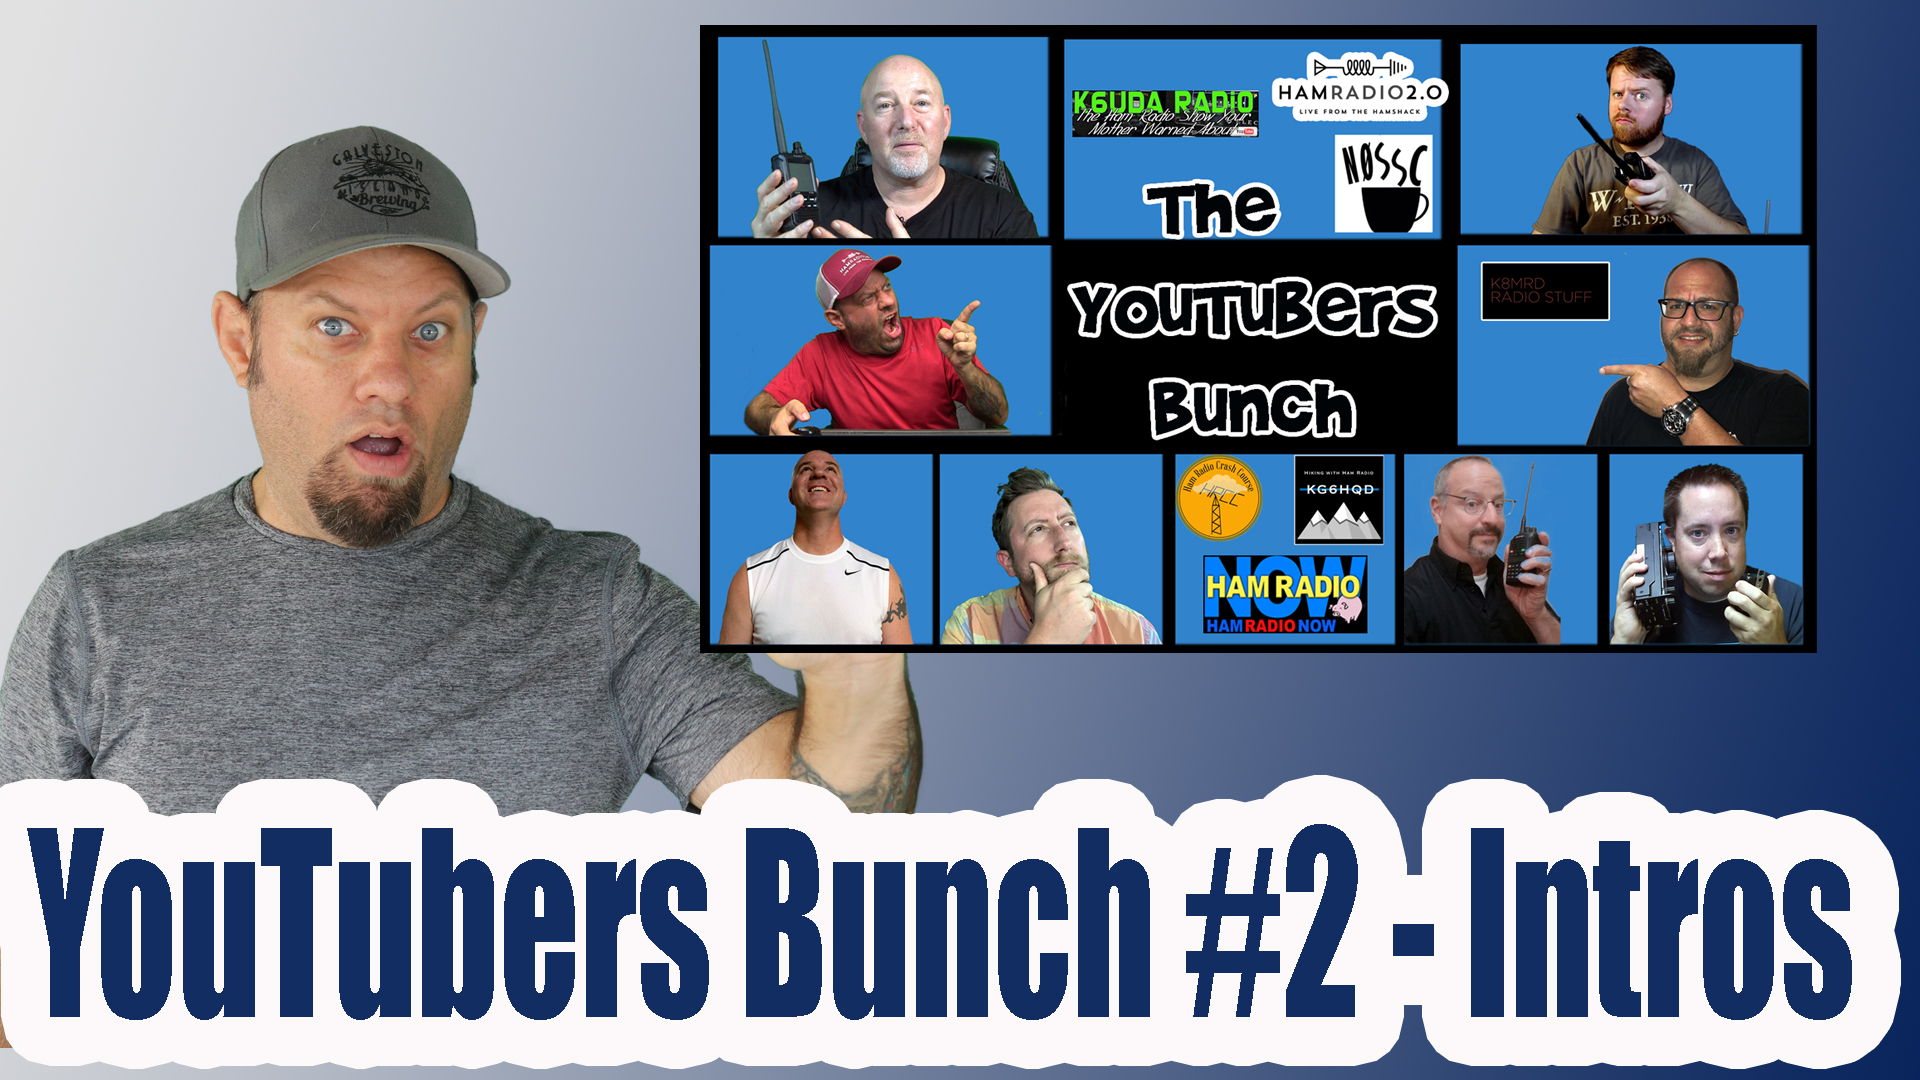 Episode 256: YouTubers Bunch #2 – Intros from 2 Other Shows